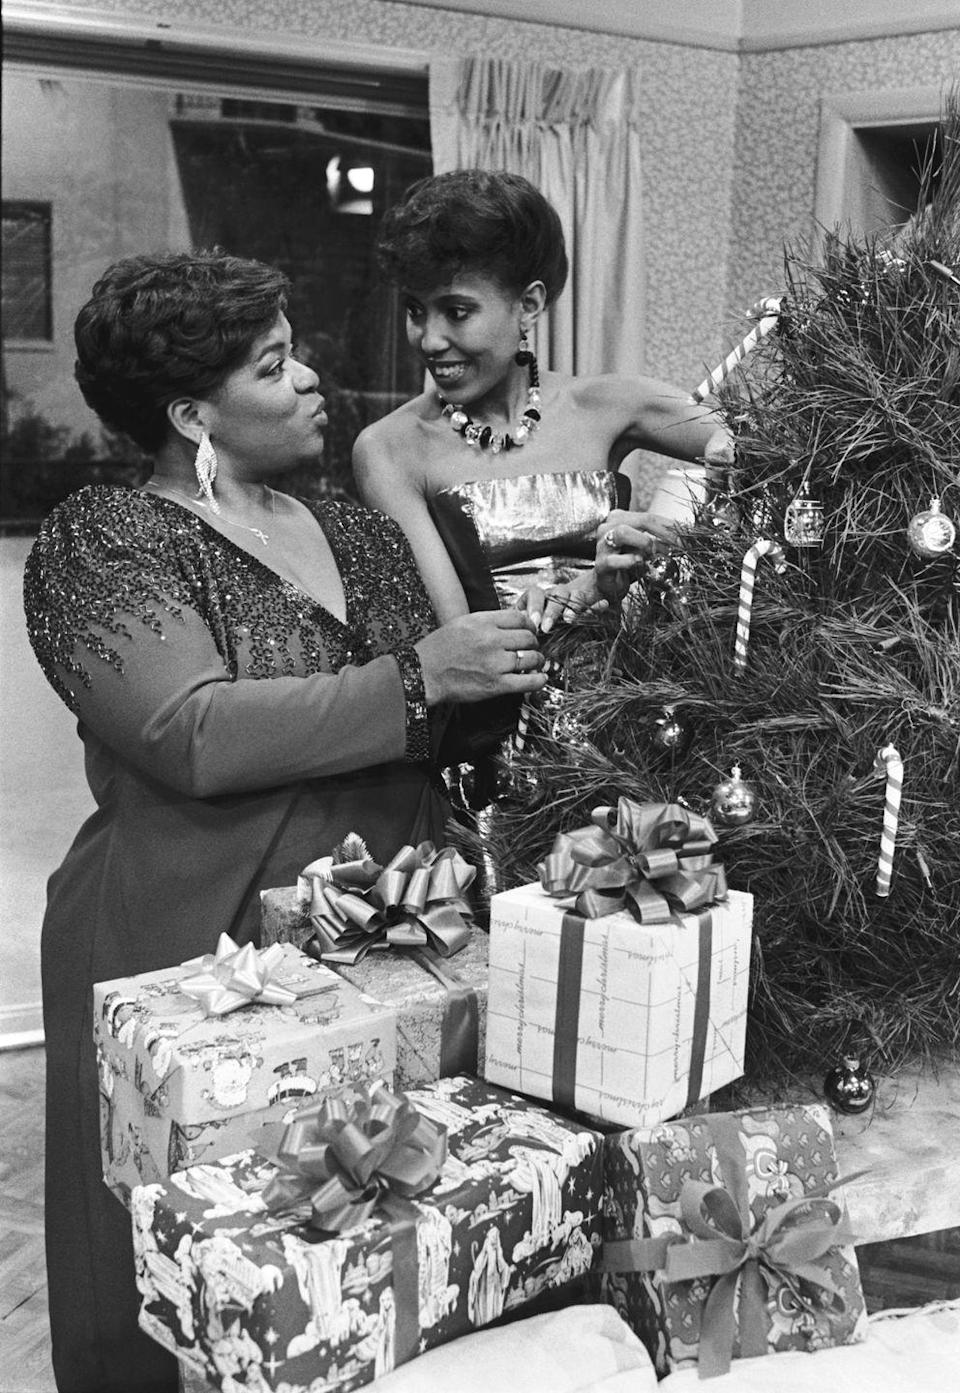 <p>The<em> Gimme a Break</em> actresses film a holiday special for Christmas. The television show saw the stars trimming a tree with candy canes in front of wrapped presents. </p>